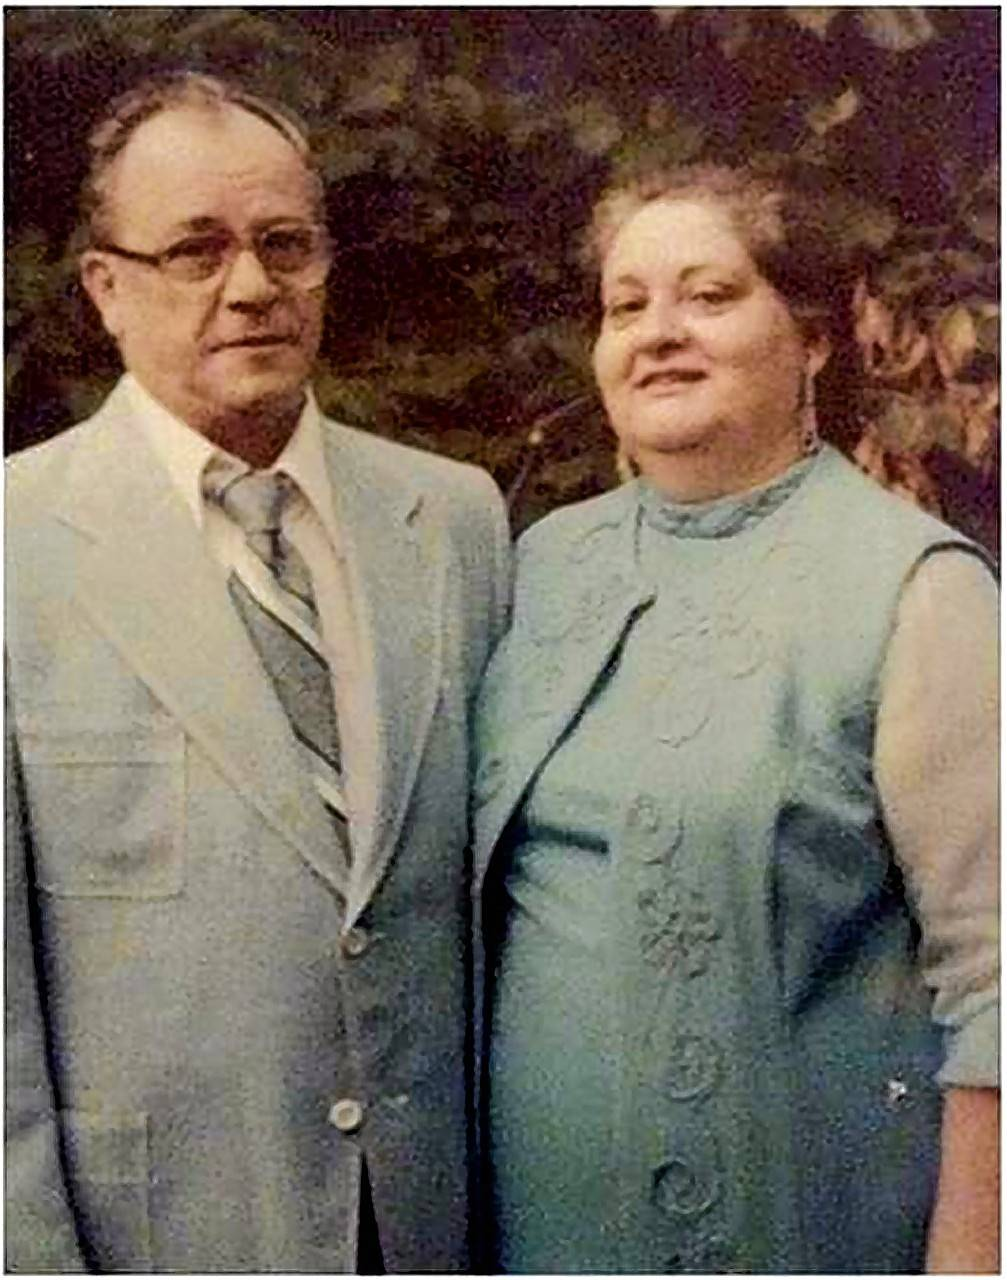 West Chicago resident Maureen Margolis has made a donation to the West Chicago City Museum in memory of her parents William and Evelyne Margolis, above, that will give 50 kids a chance to participate in STEM programming at the museum this summer.